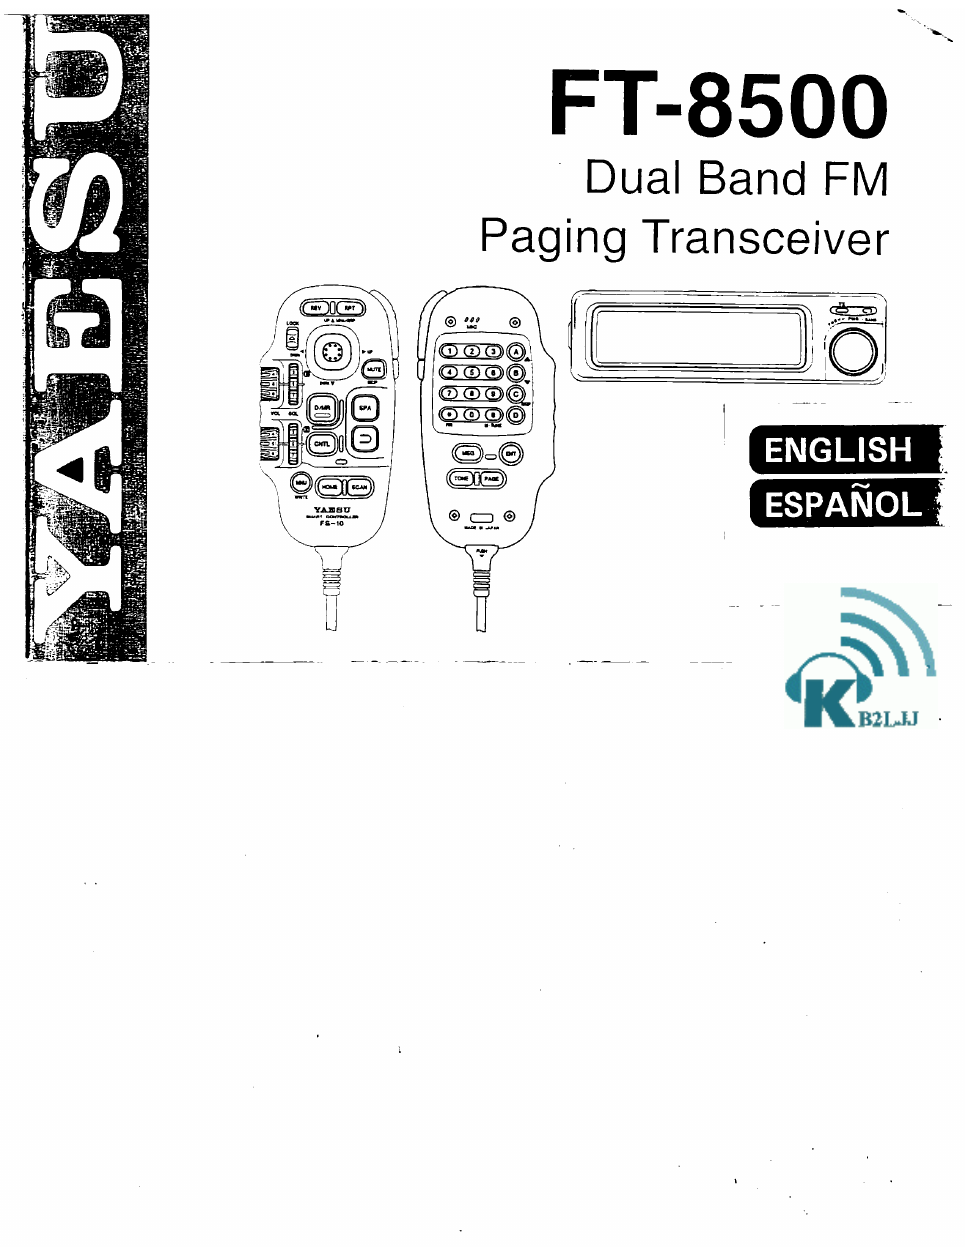 yaesu ft 8500 user s manual free pdf download 76 pages rh manualagent com Yaesu FT 8500 Green Wire yaesu ft-8500 service manual